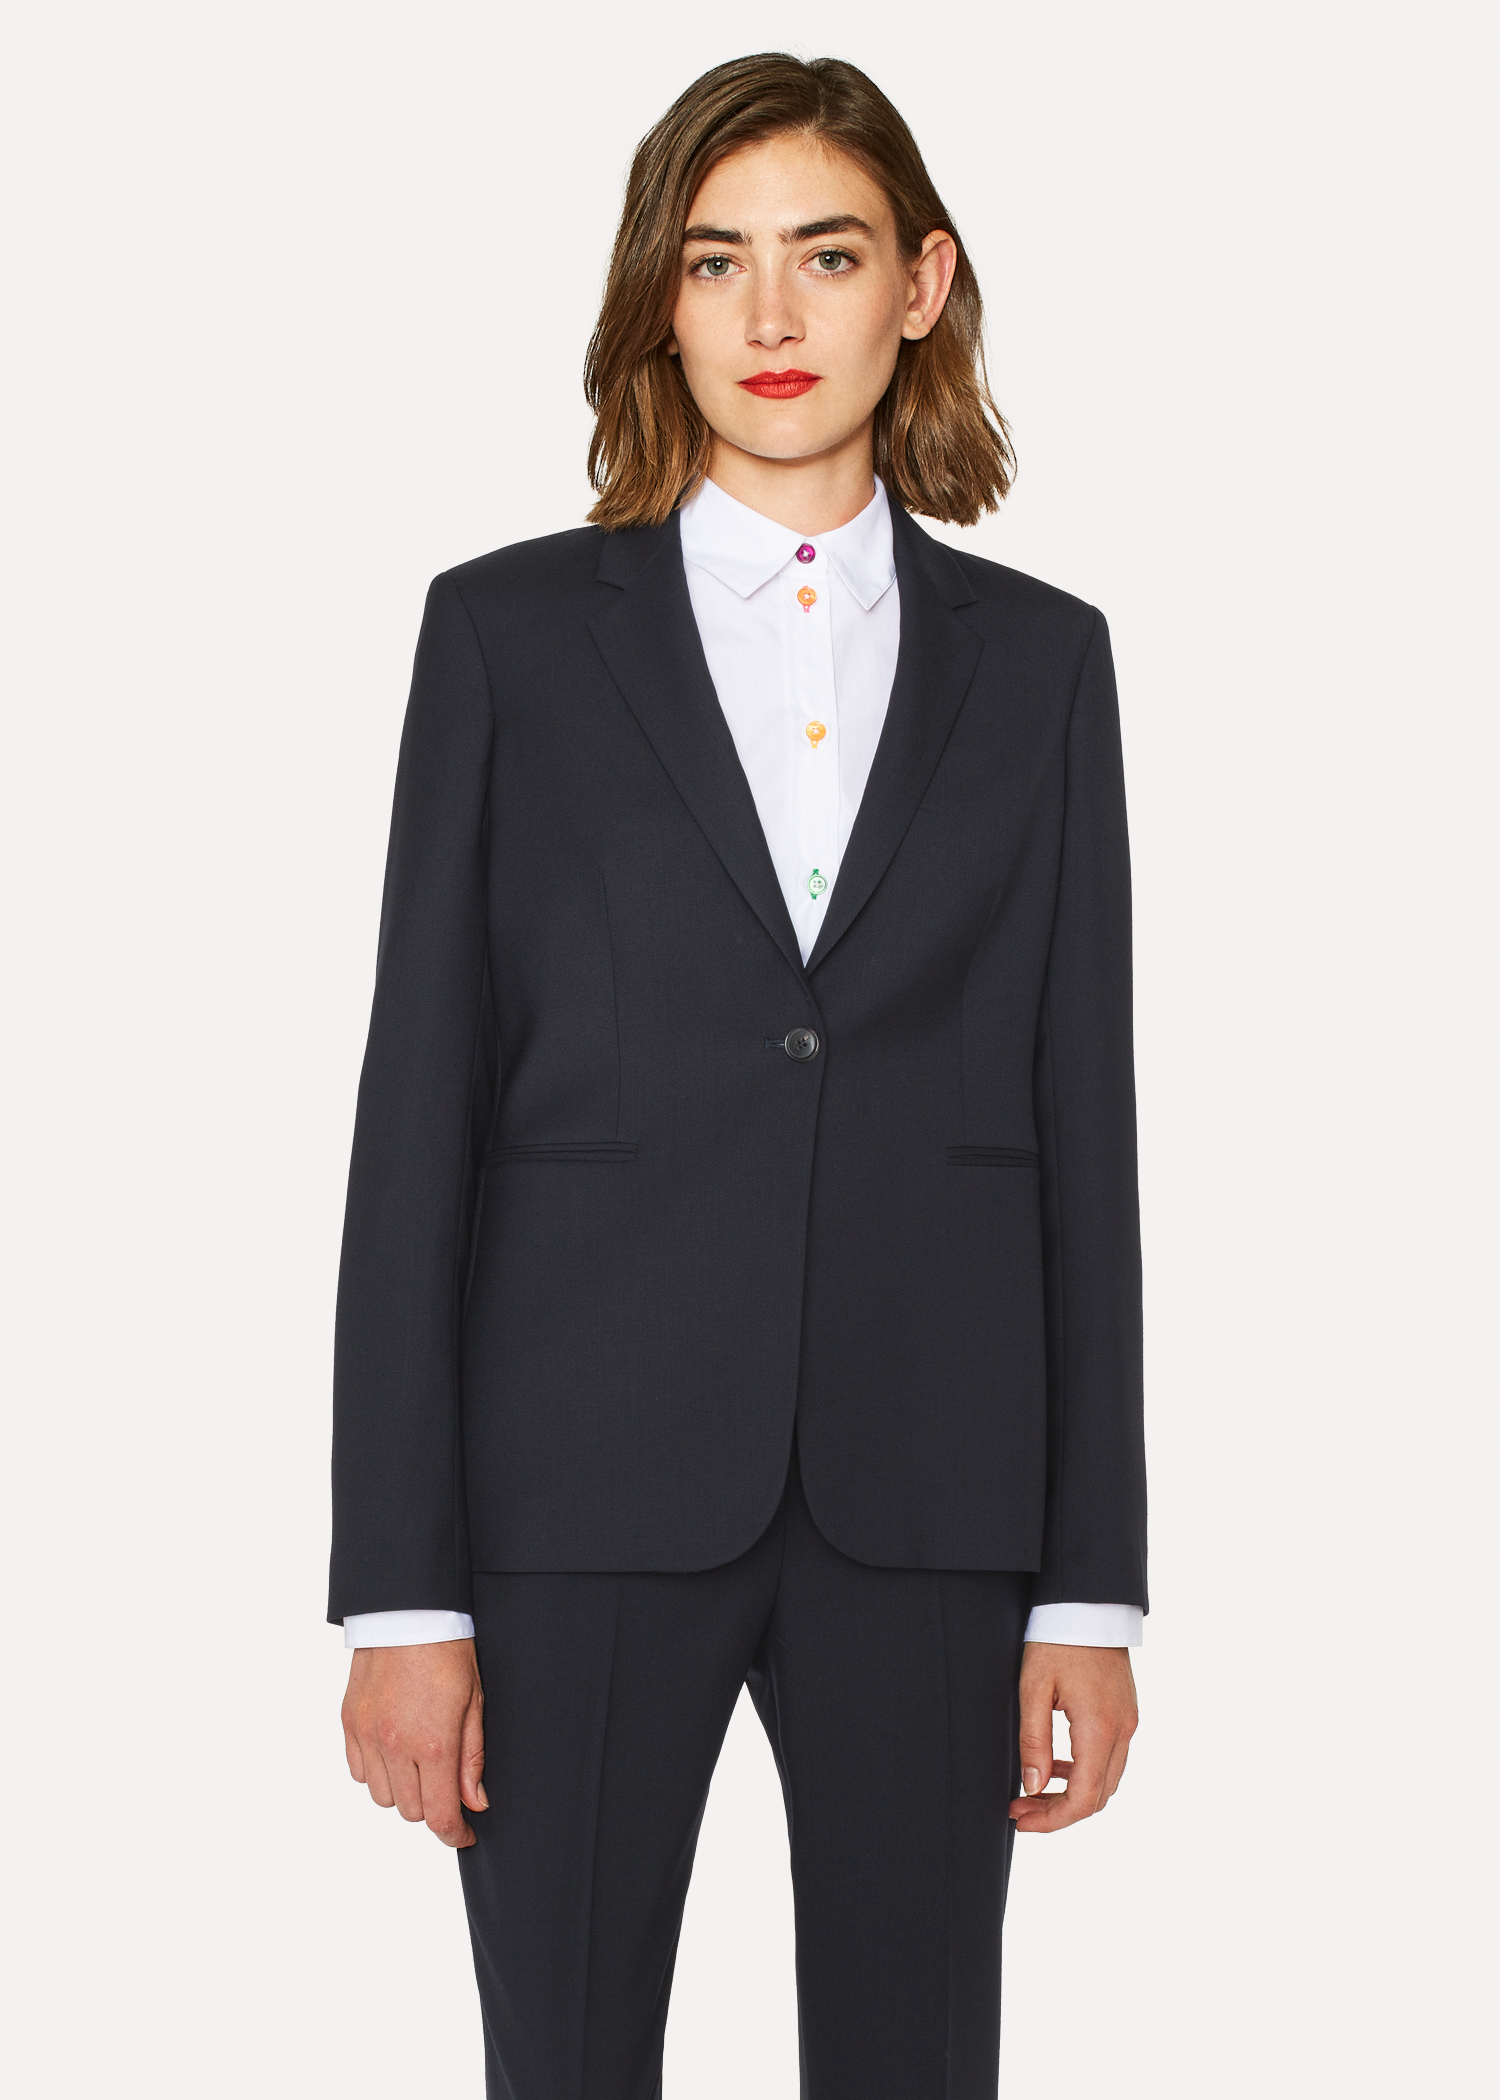 A Suit To Travel In - Women s Navy One-Button Wool Blazer - Paul ... 7d7d9a07b1